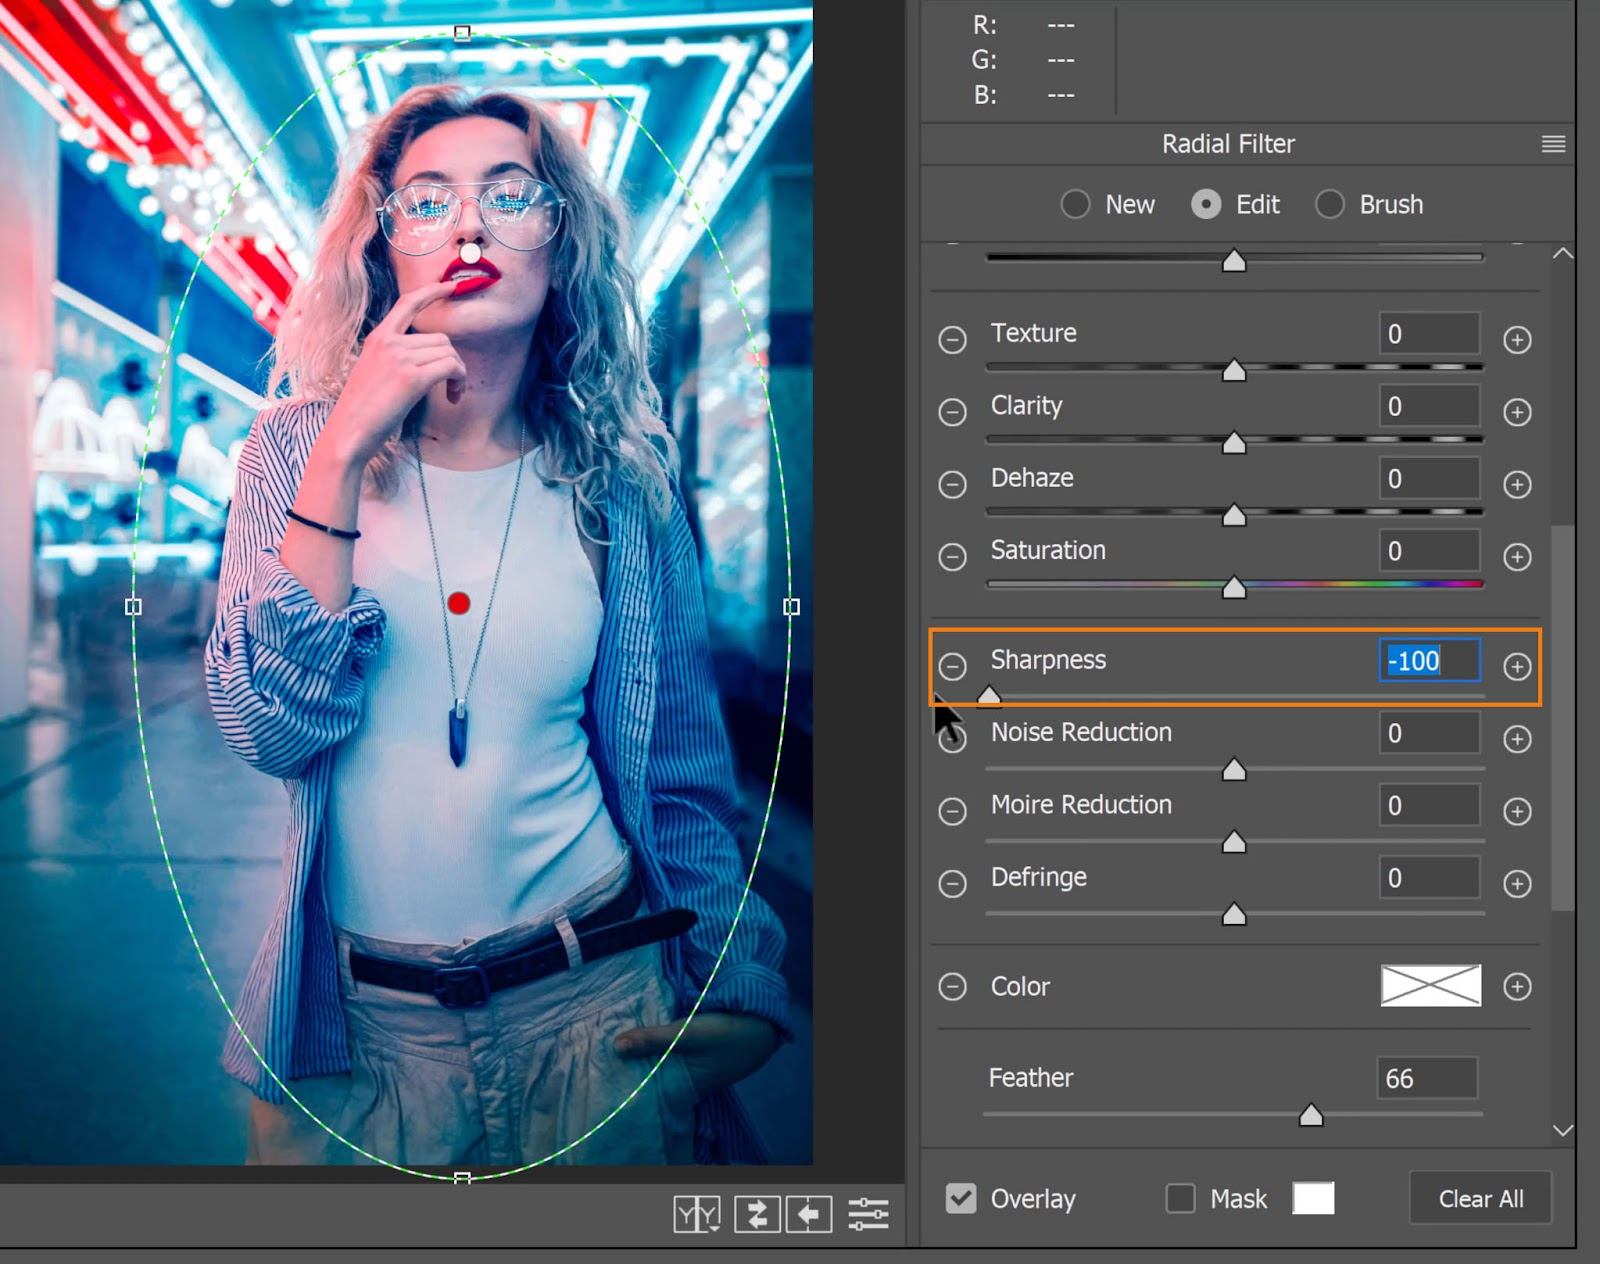 Adjust the Sharpness slider for the Neon Portrait Color Effect In Photoshop